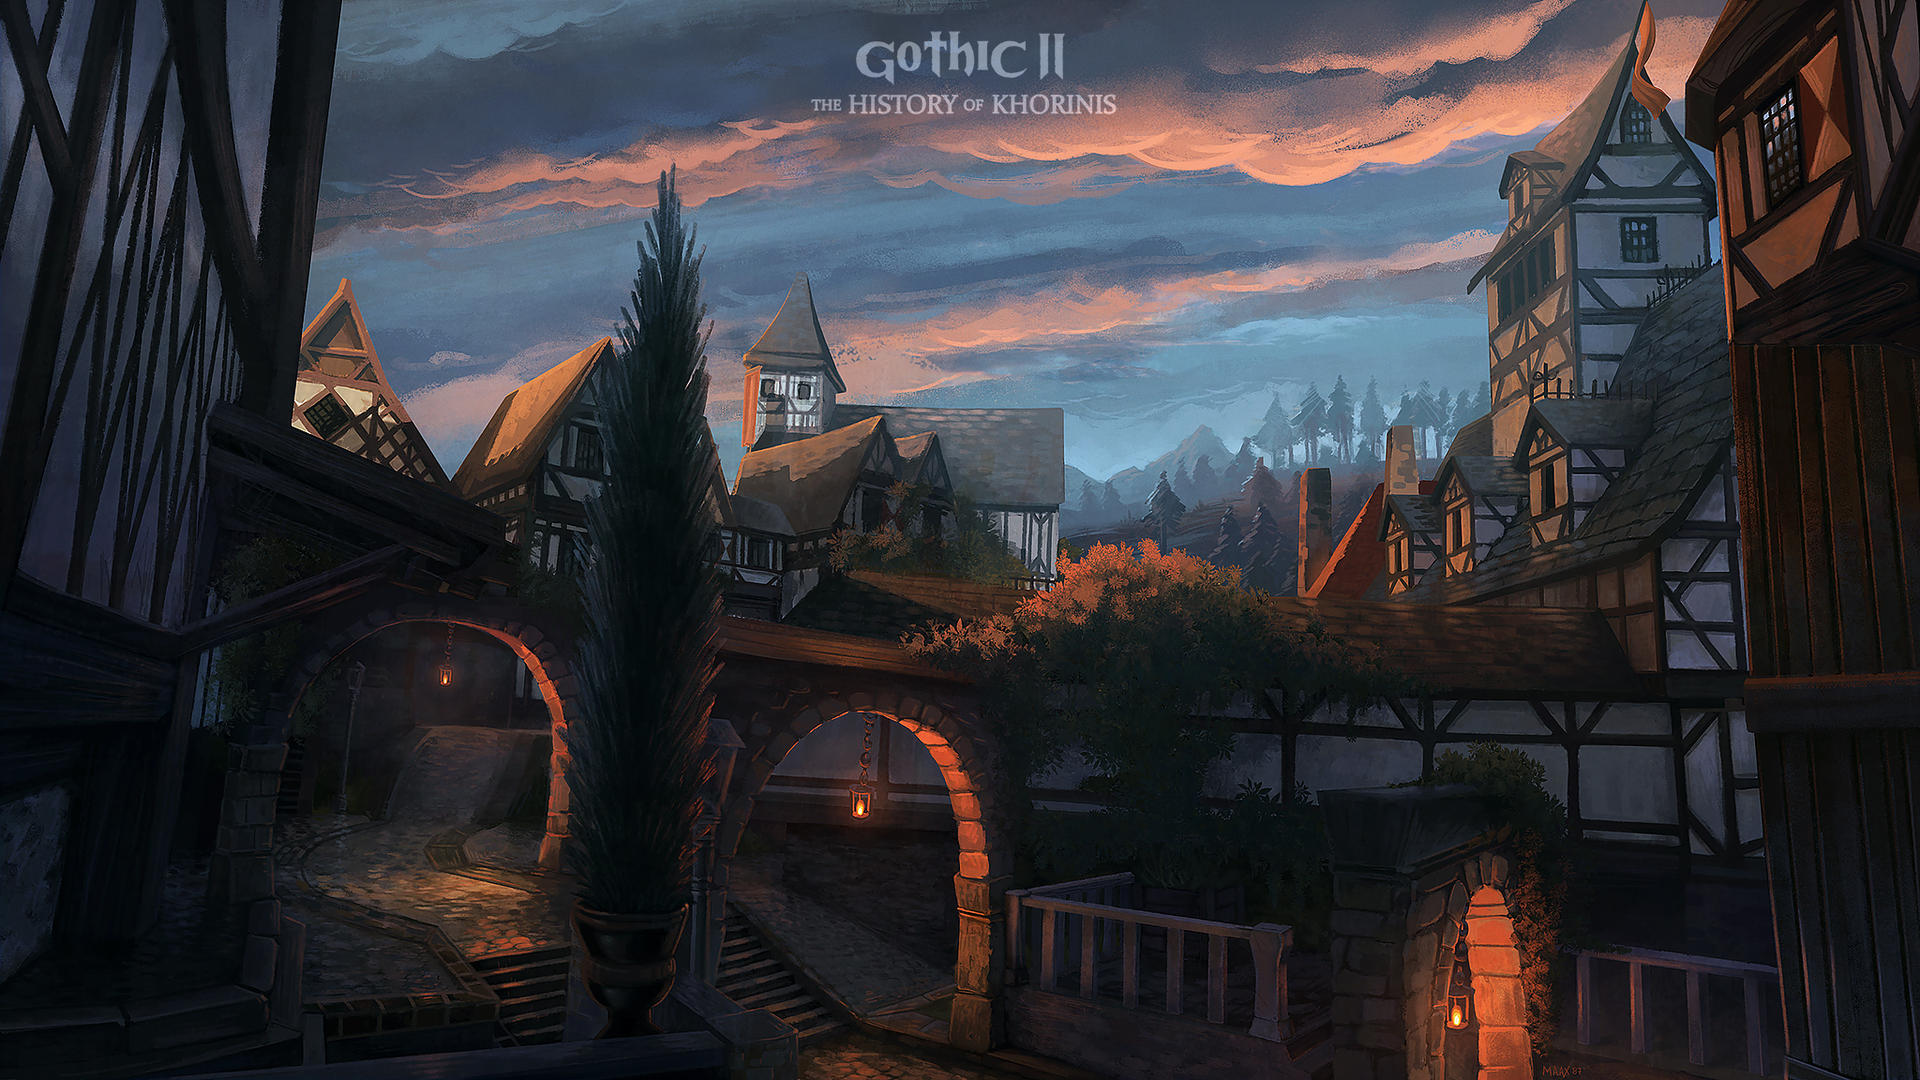 gothic_ii__the_history_of_khorinis_by_freelancerart_dd720op-fullview.jpg